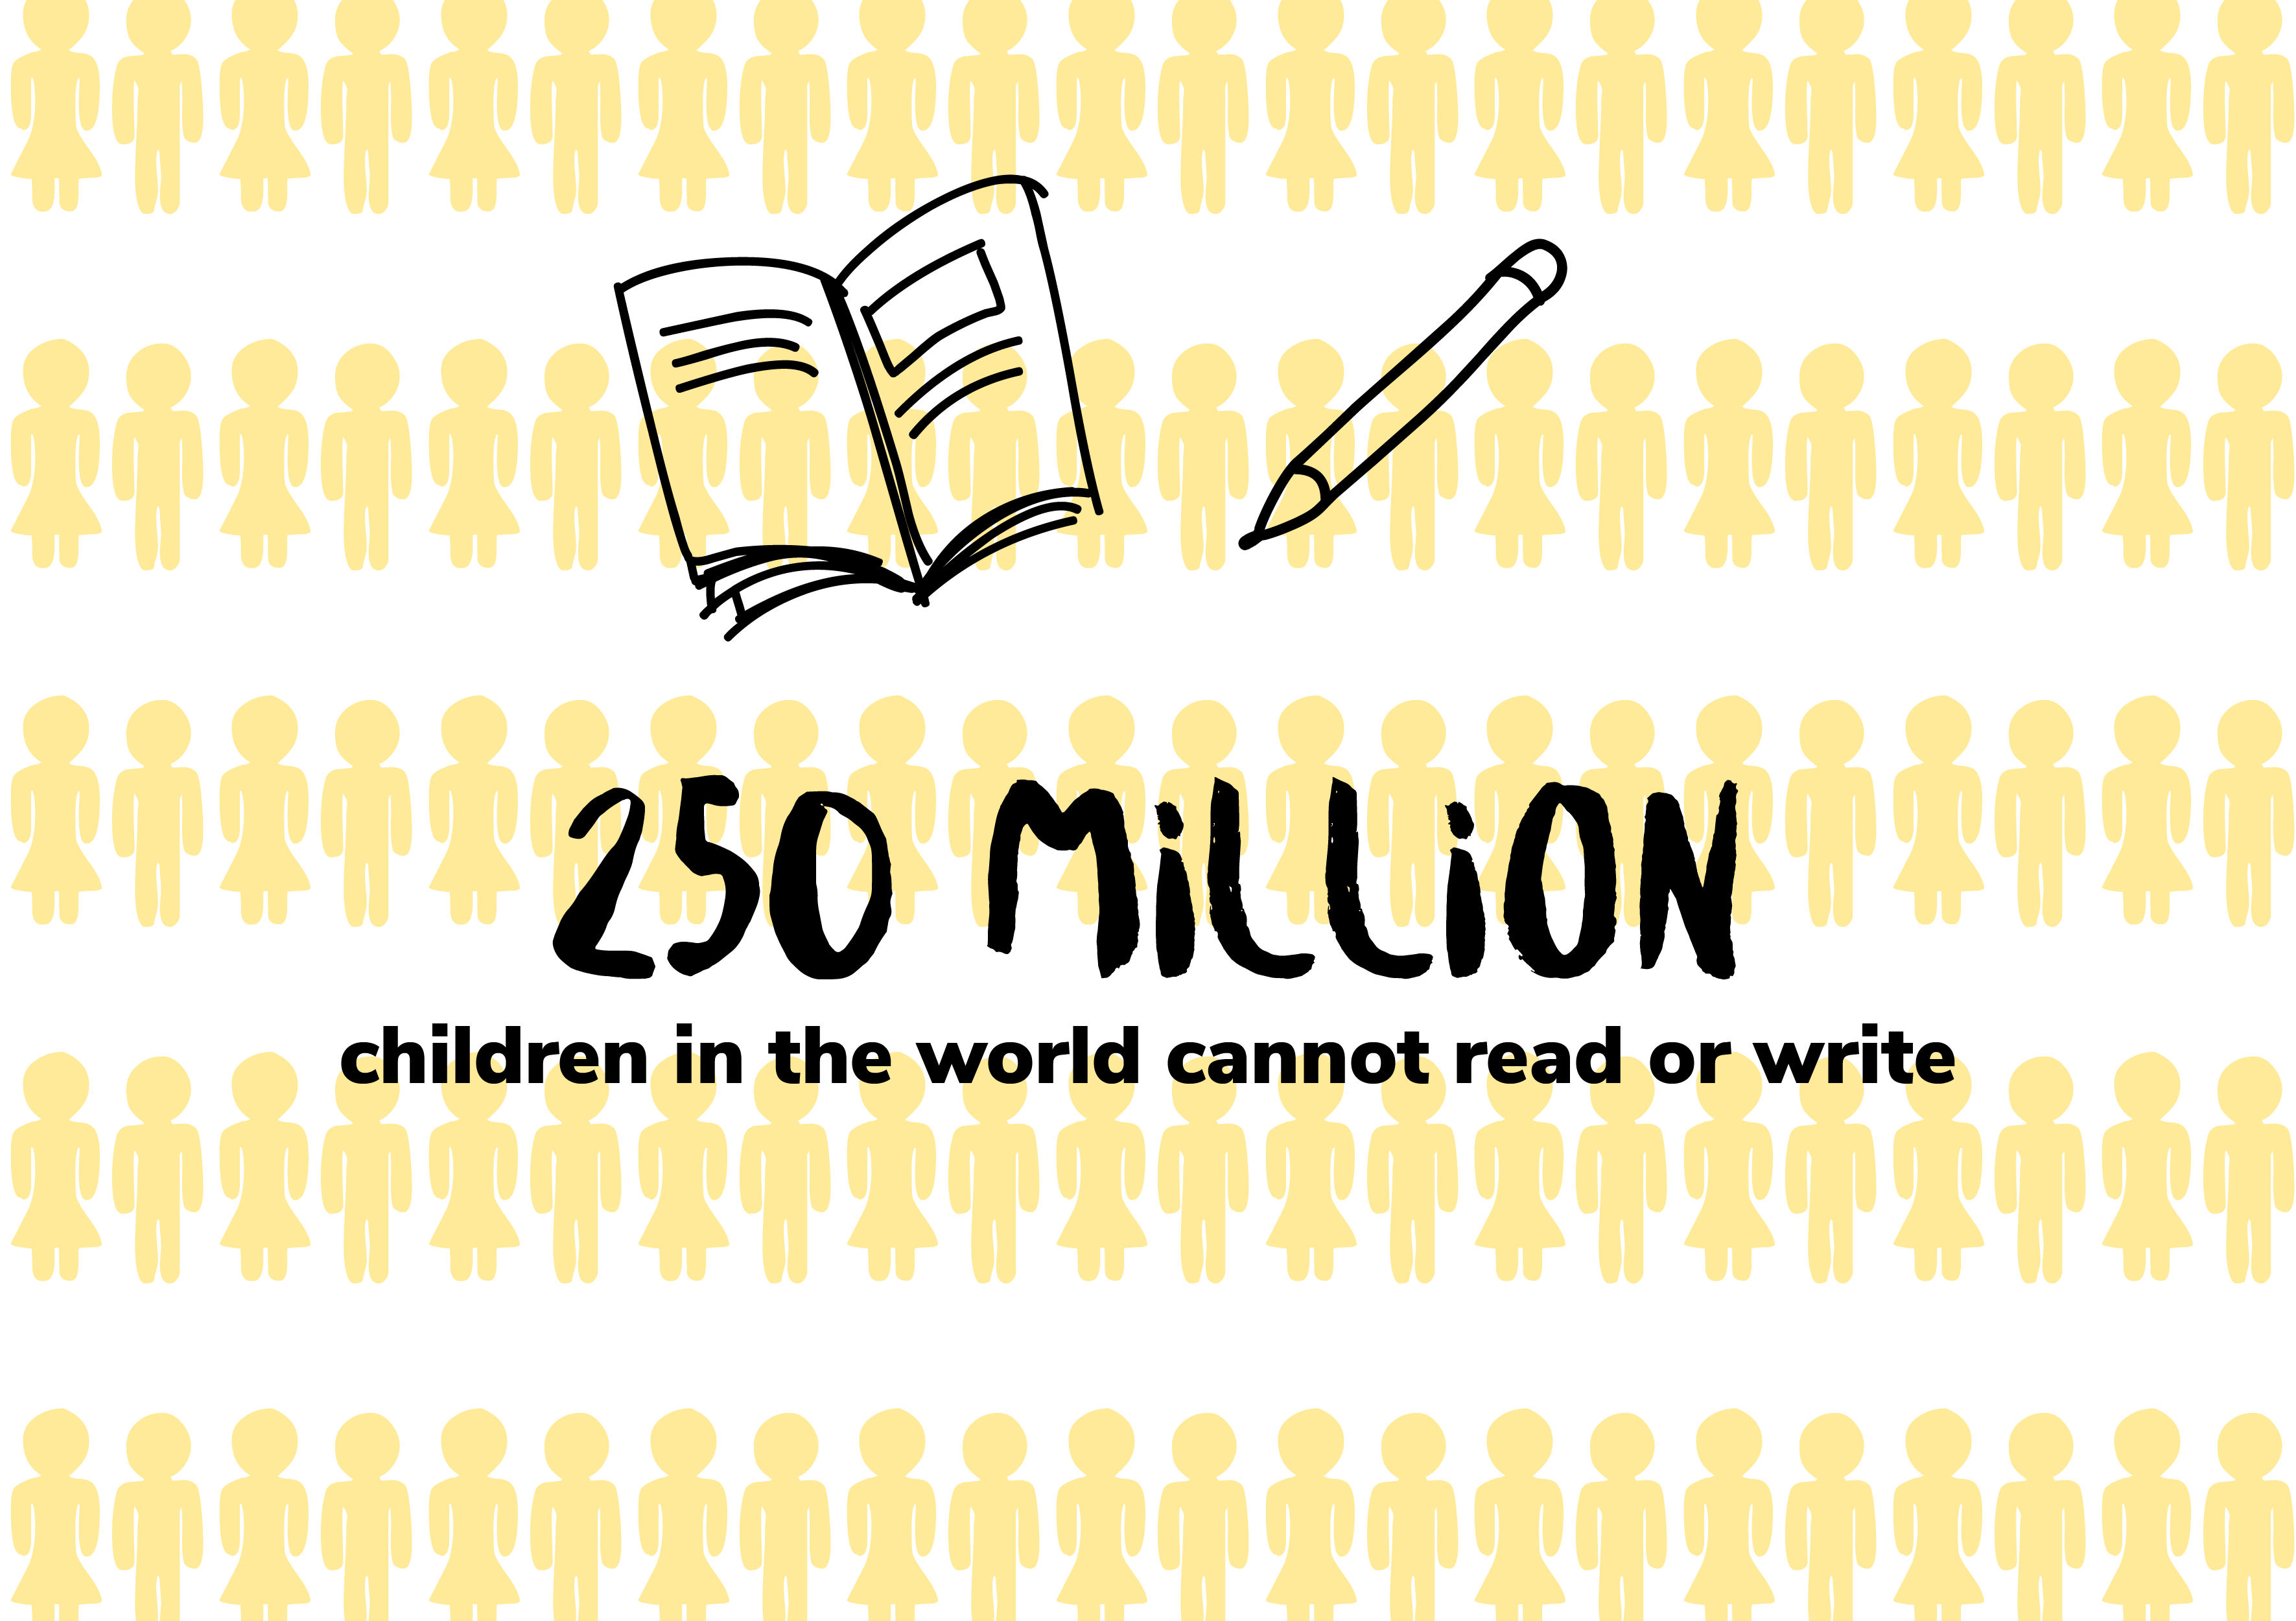 250 million children in the world cannot read or write